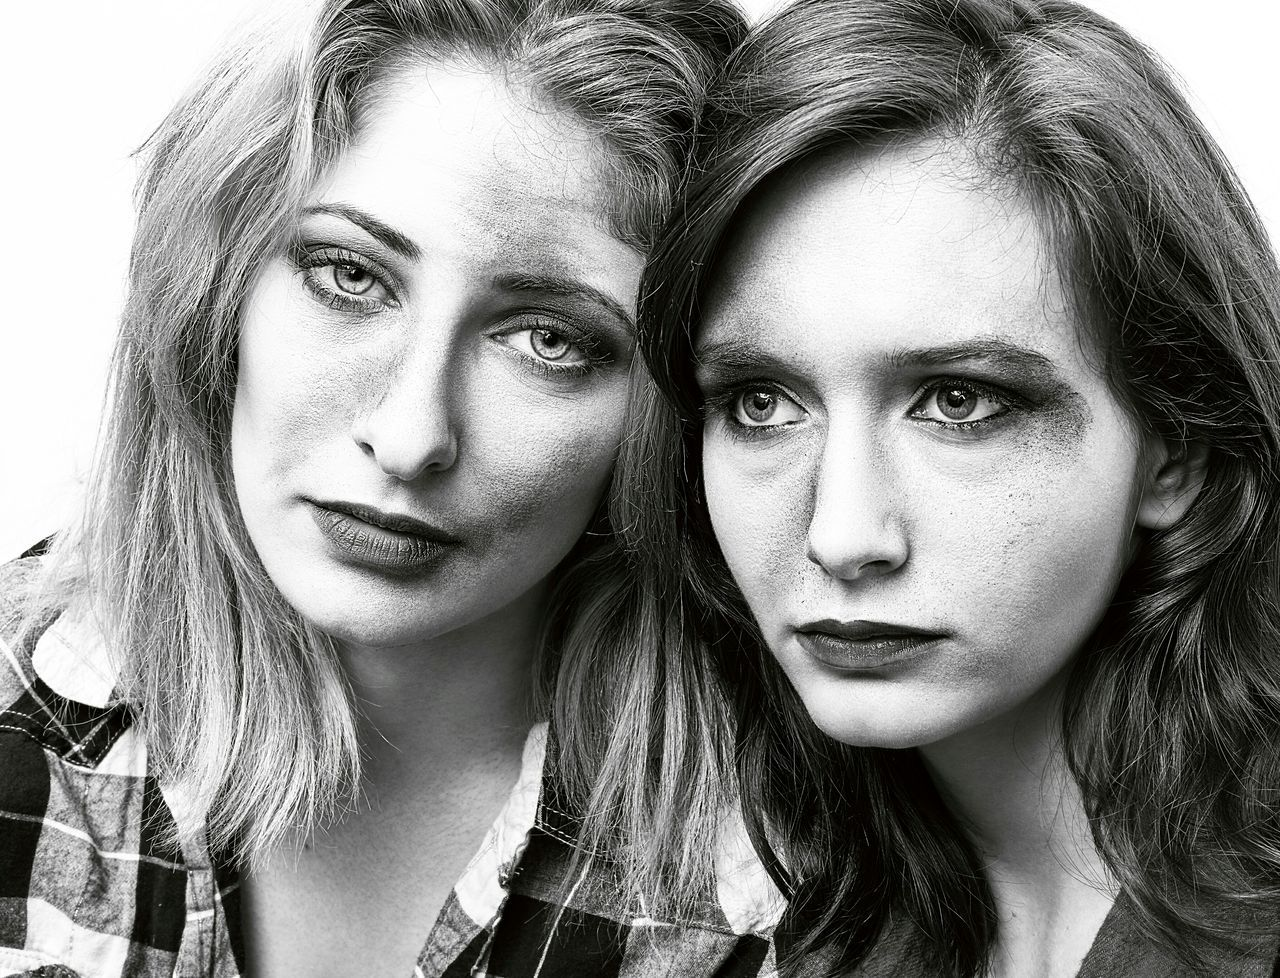 sadness, portrait, two people, headshot, looking at camera, young adult, women, young women, human face, lifestyles, friendship, real people, beautiful people, adult, people, close-up, blond hair, day, relationship difficulties, outdoors, adults only